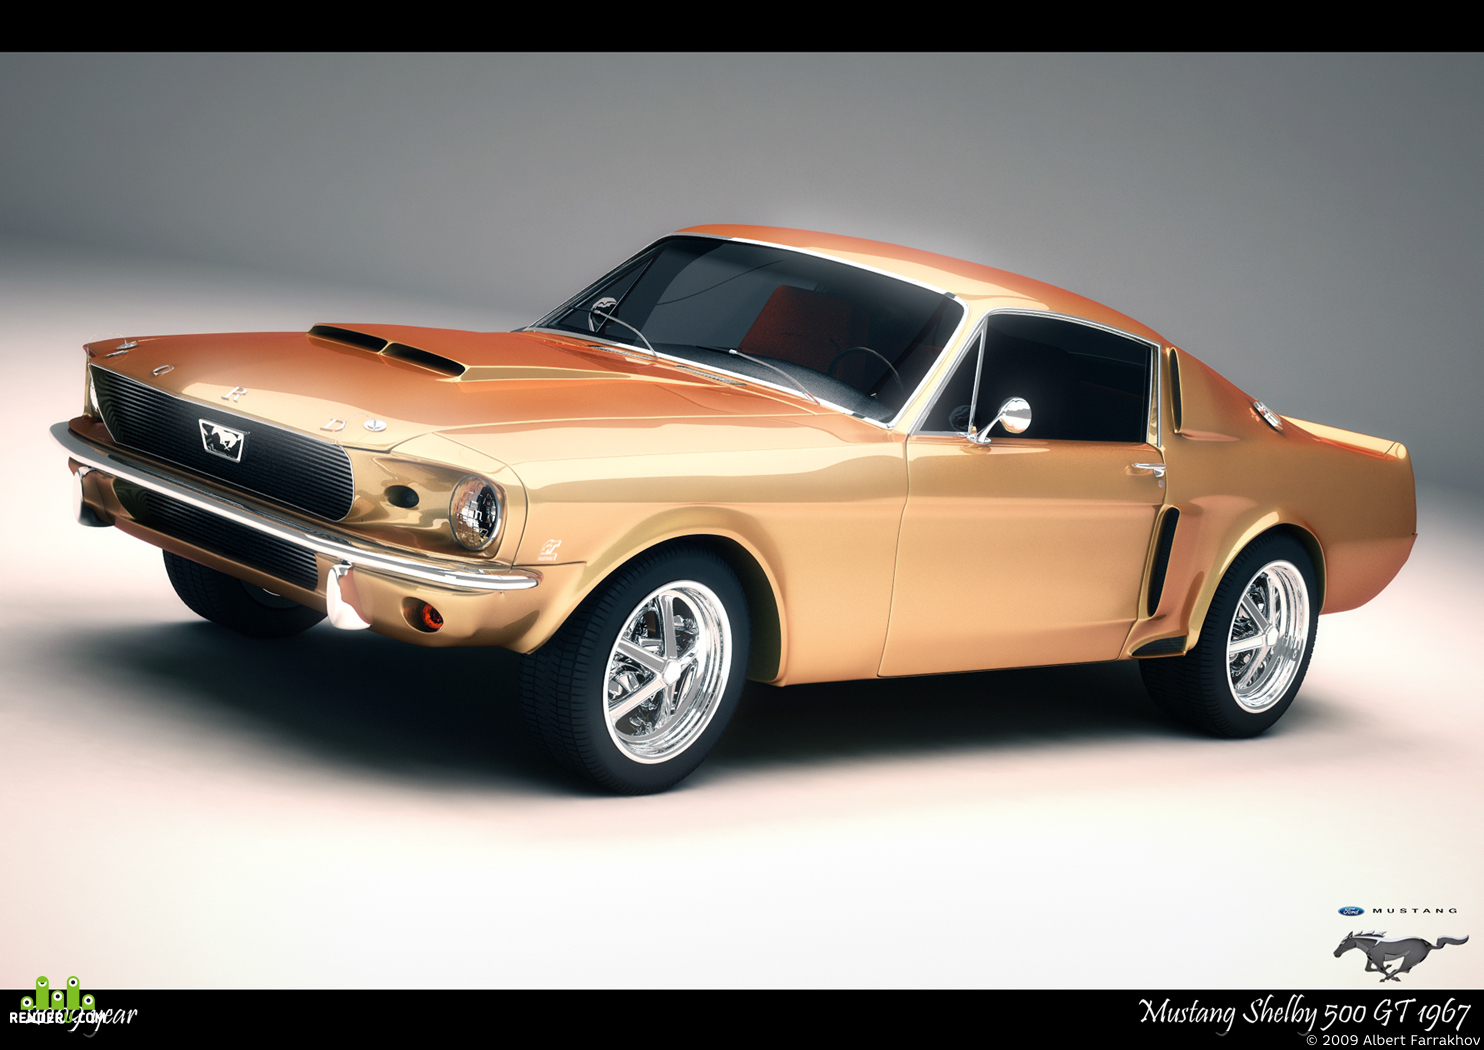 preview Mustang Shelby 500GT